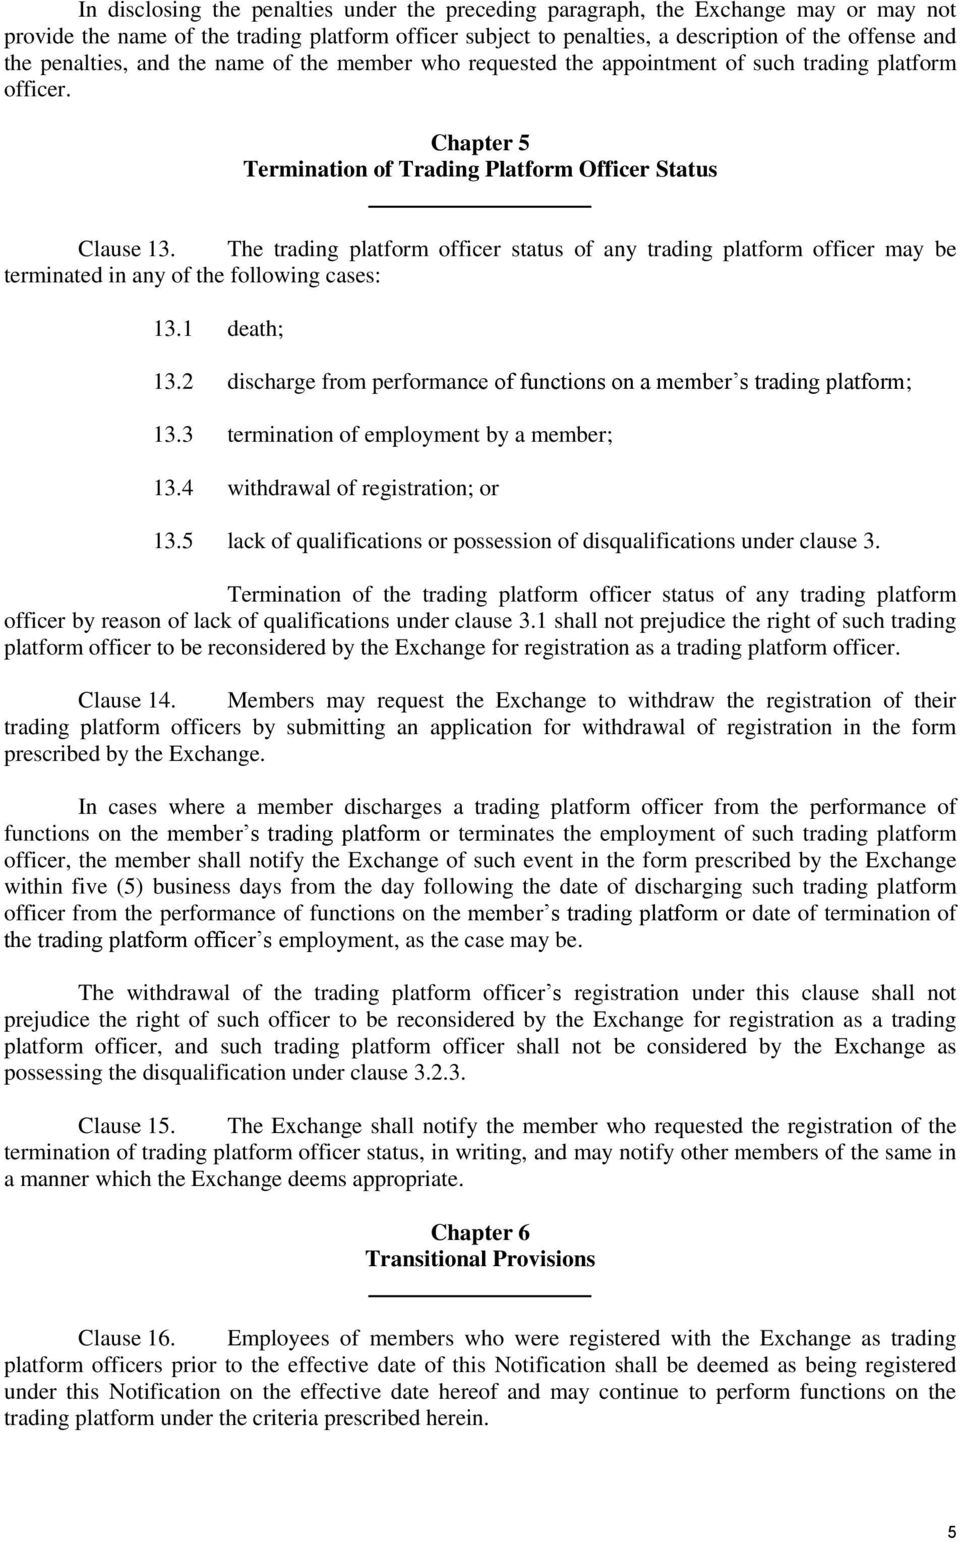 The trading platform officer status of any trading platform officer may be terminated in any of the following cases: 13.1 death; 13.